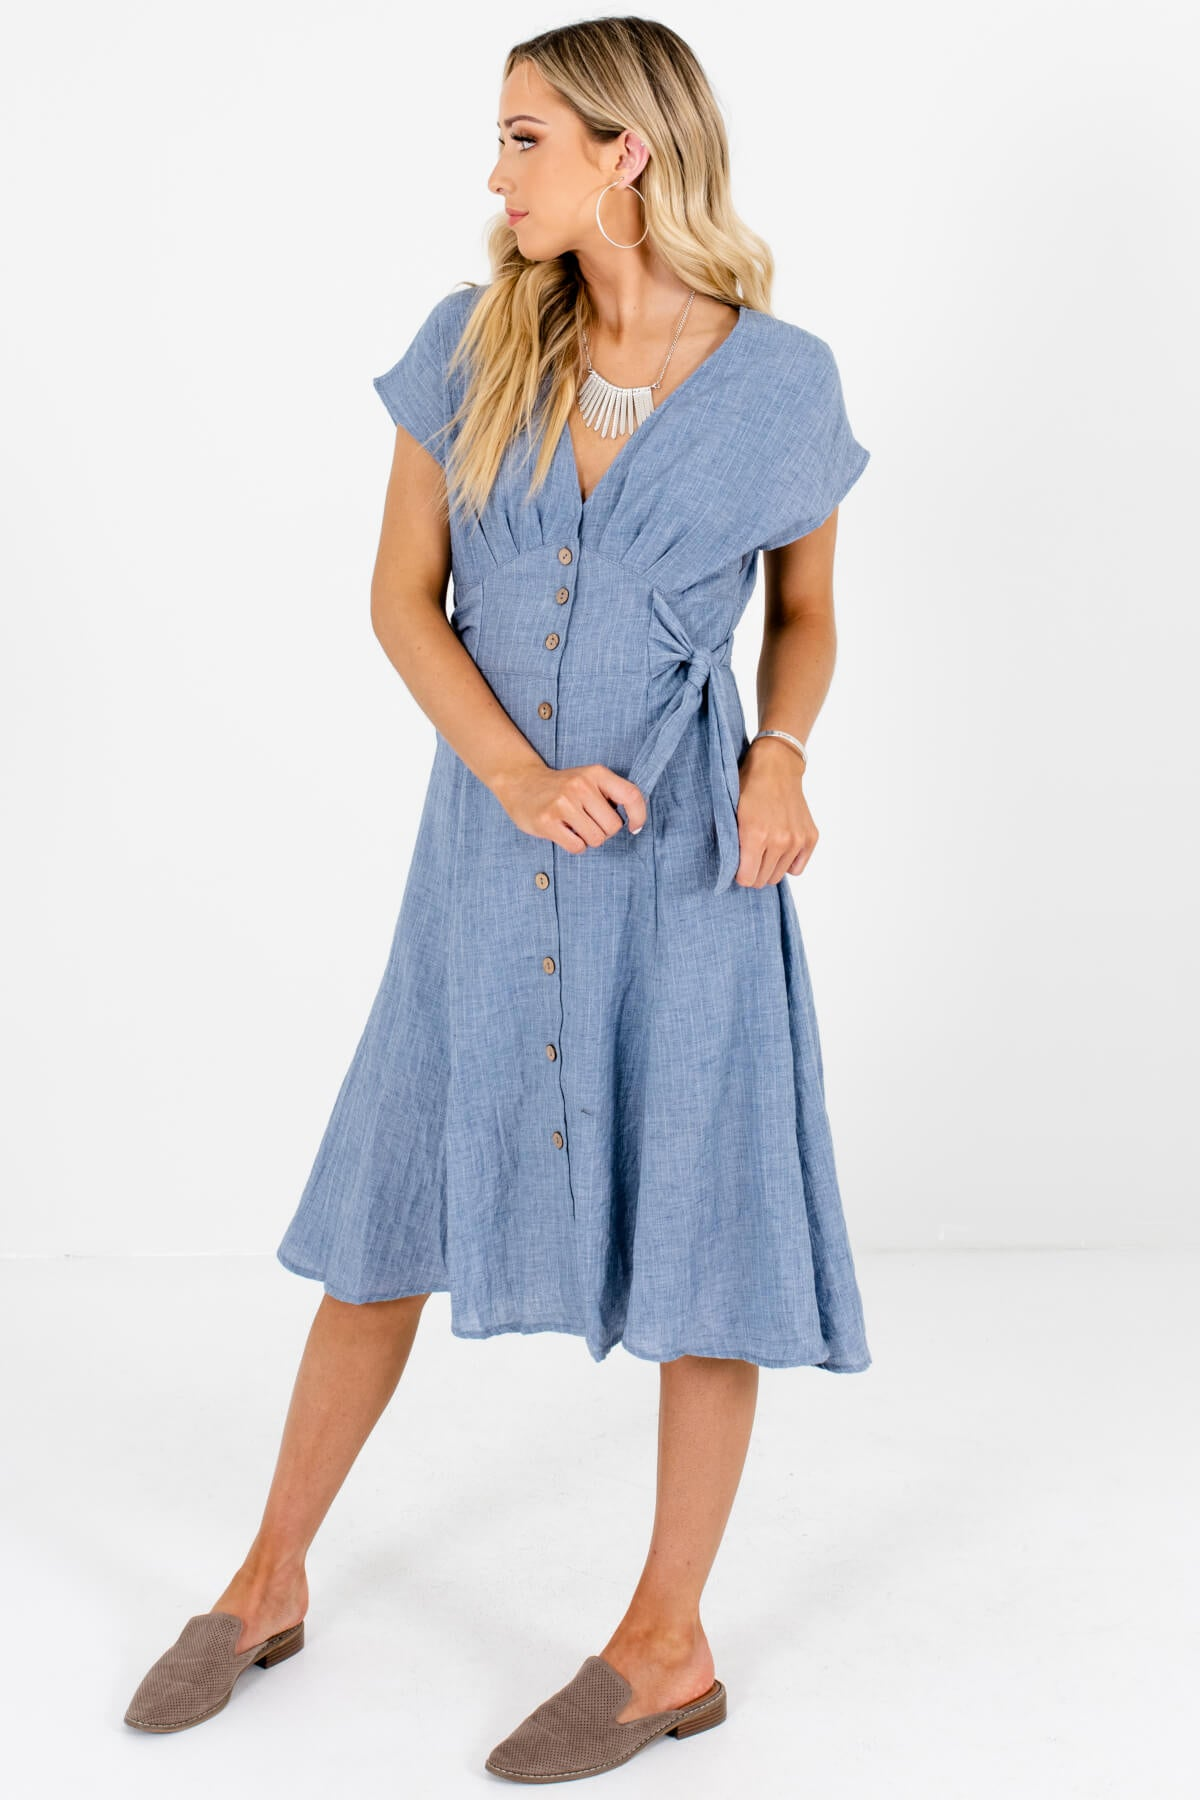 Blue Side Tie Button-Up Midi Dresses Affordable Online Boutique